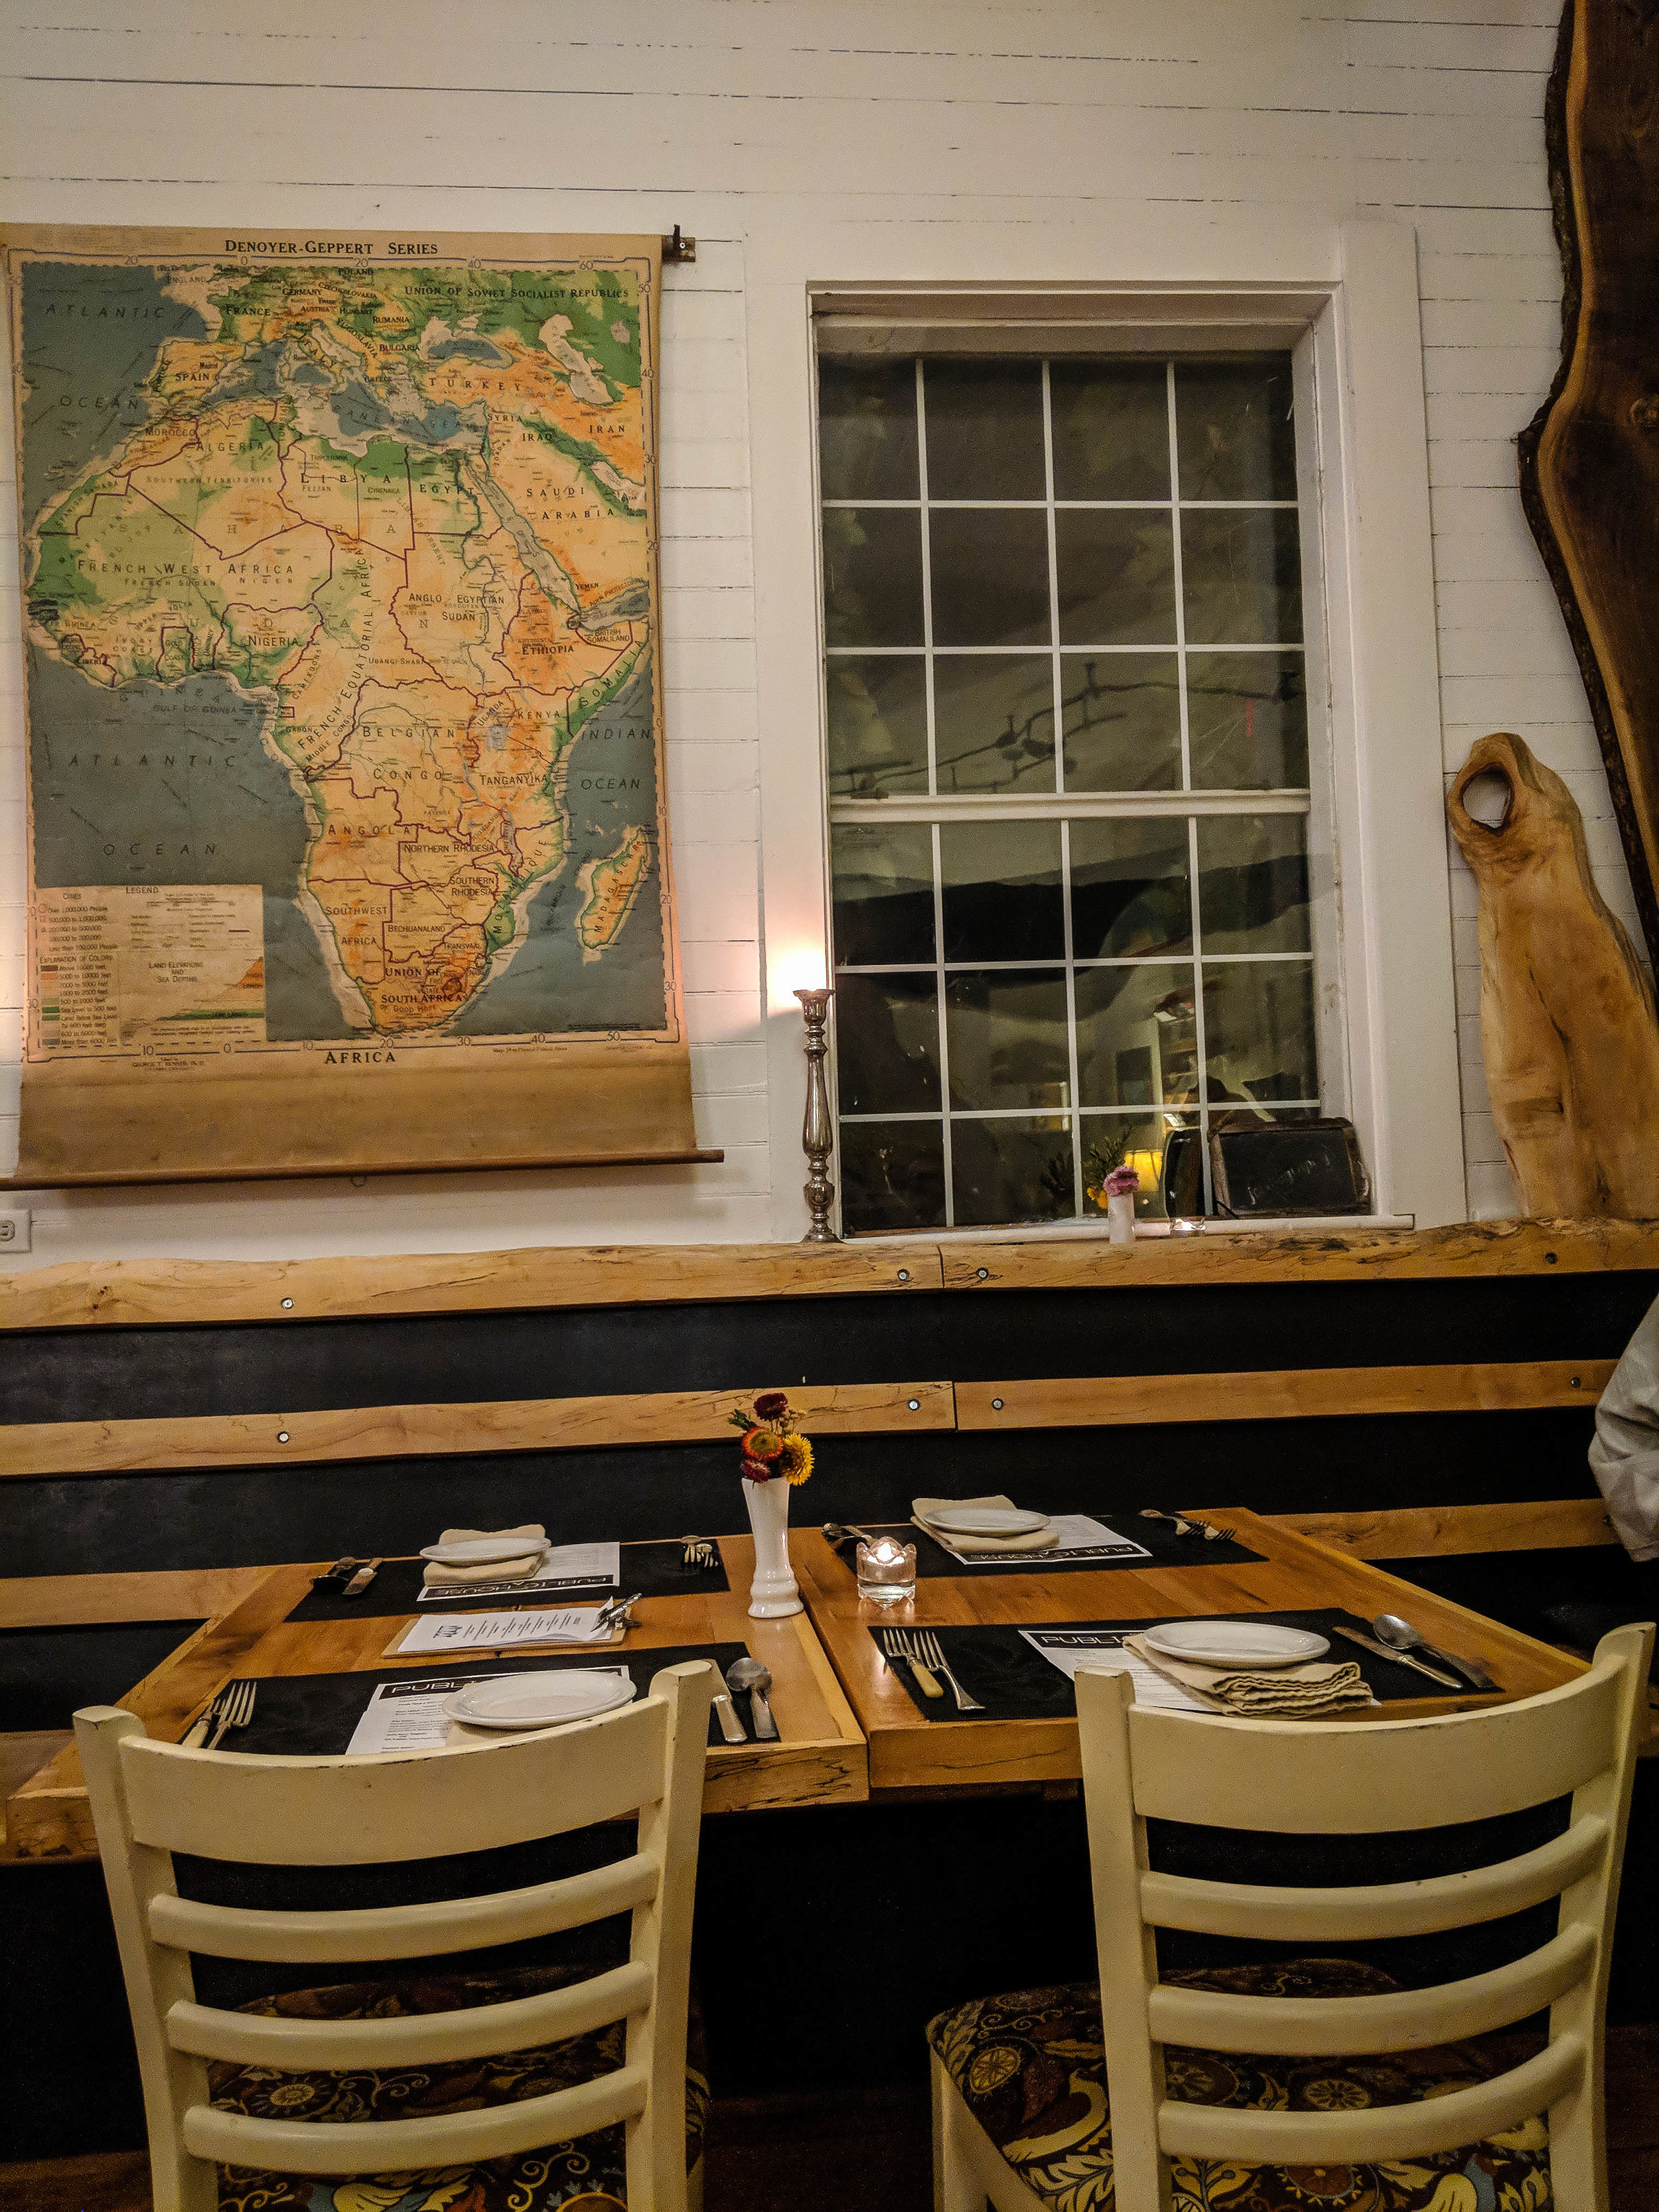 Public house restaurant - Things to do in Prince Edward County